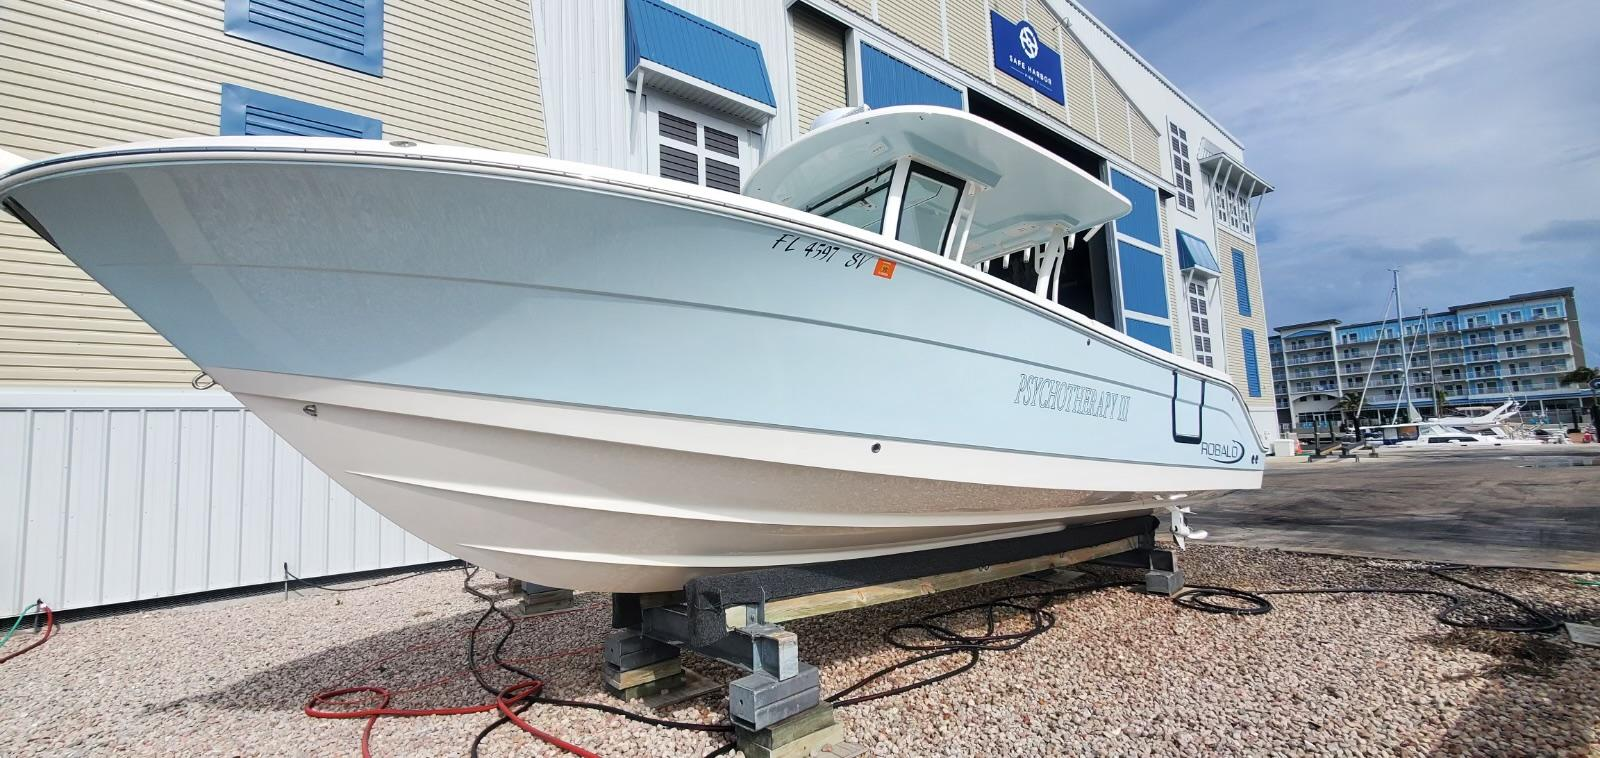 F 6289 SK Knot 10 Yacht Sales